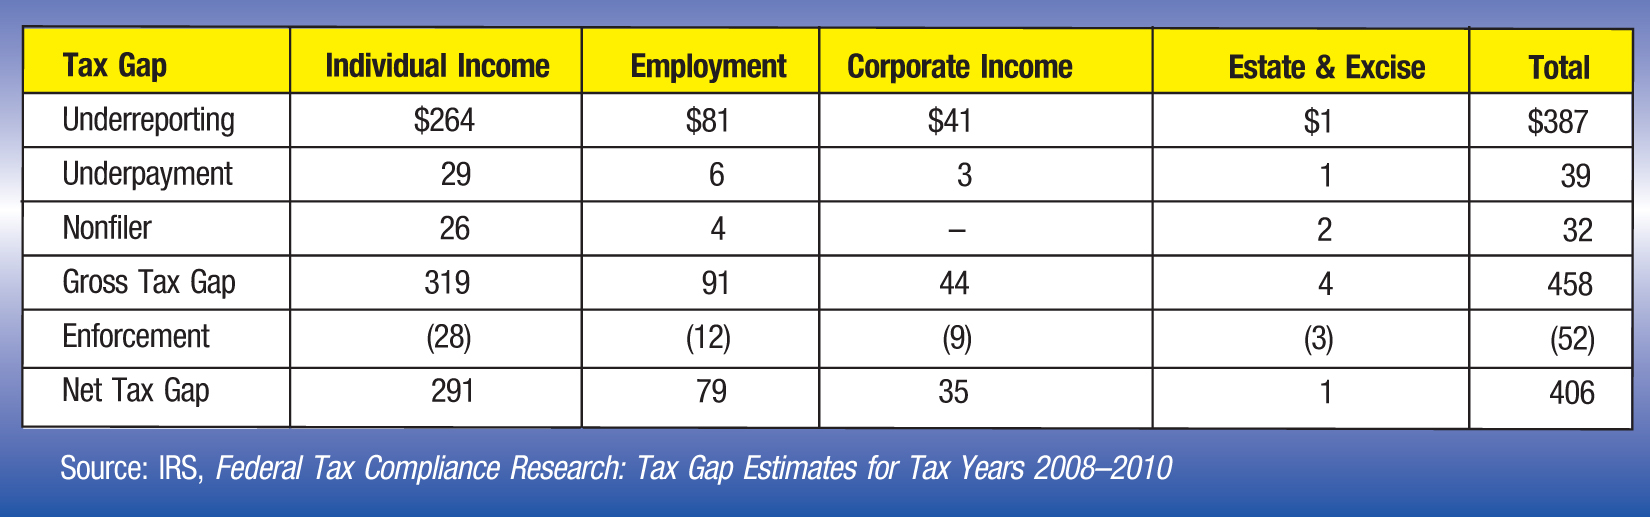 Tax Gap; Individual Income; Employment; Corporate Income; Estate & Excise; Total Underreporting; $264; $81; $41; $1; $387 Underpayment; 29; 6; 3; 1; 39 Nonfiler; 26; 4; –; 2; 32 Gross Tax Gap; 319; 91; 44; 4; 458 Enforcement; (28); (12); (9); (3); (52) Net Tax Gap; 291; 79; 35; 1; 406 Source: IRS, Federal Tax Compliance Research: Tax Gap Estimates for Tax Years 2008–2010